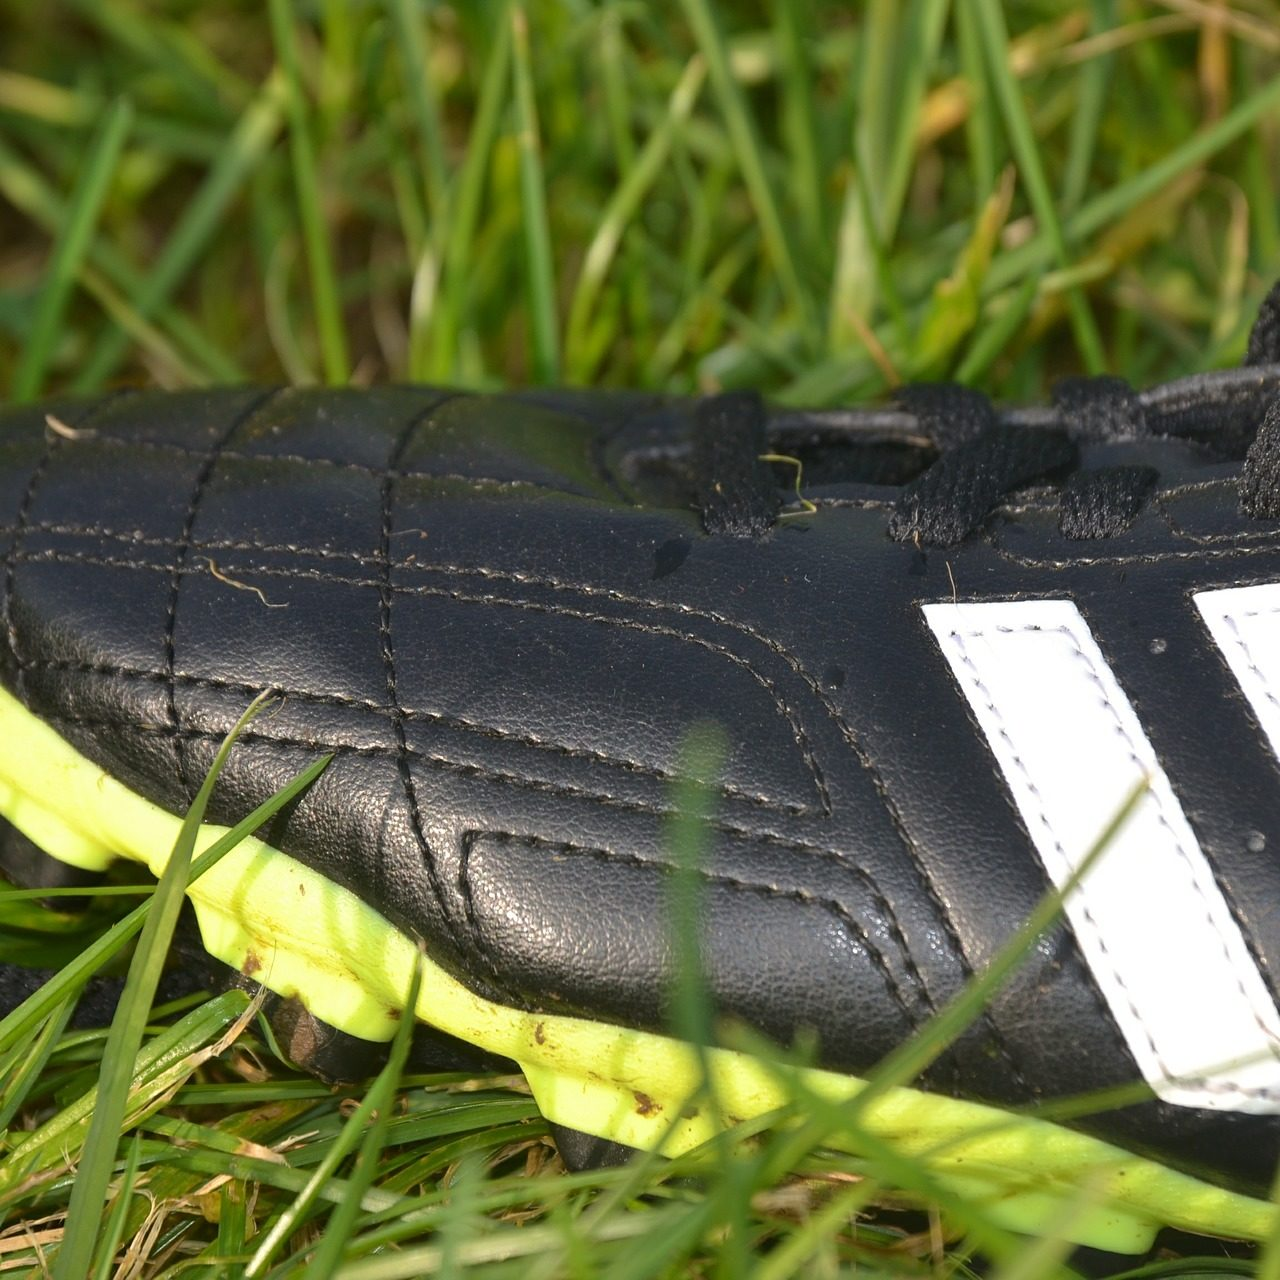 football-boots-487007_1920